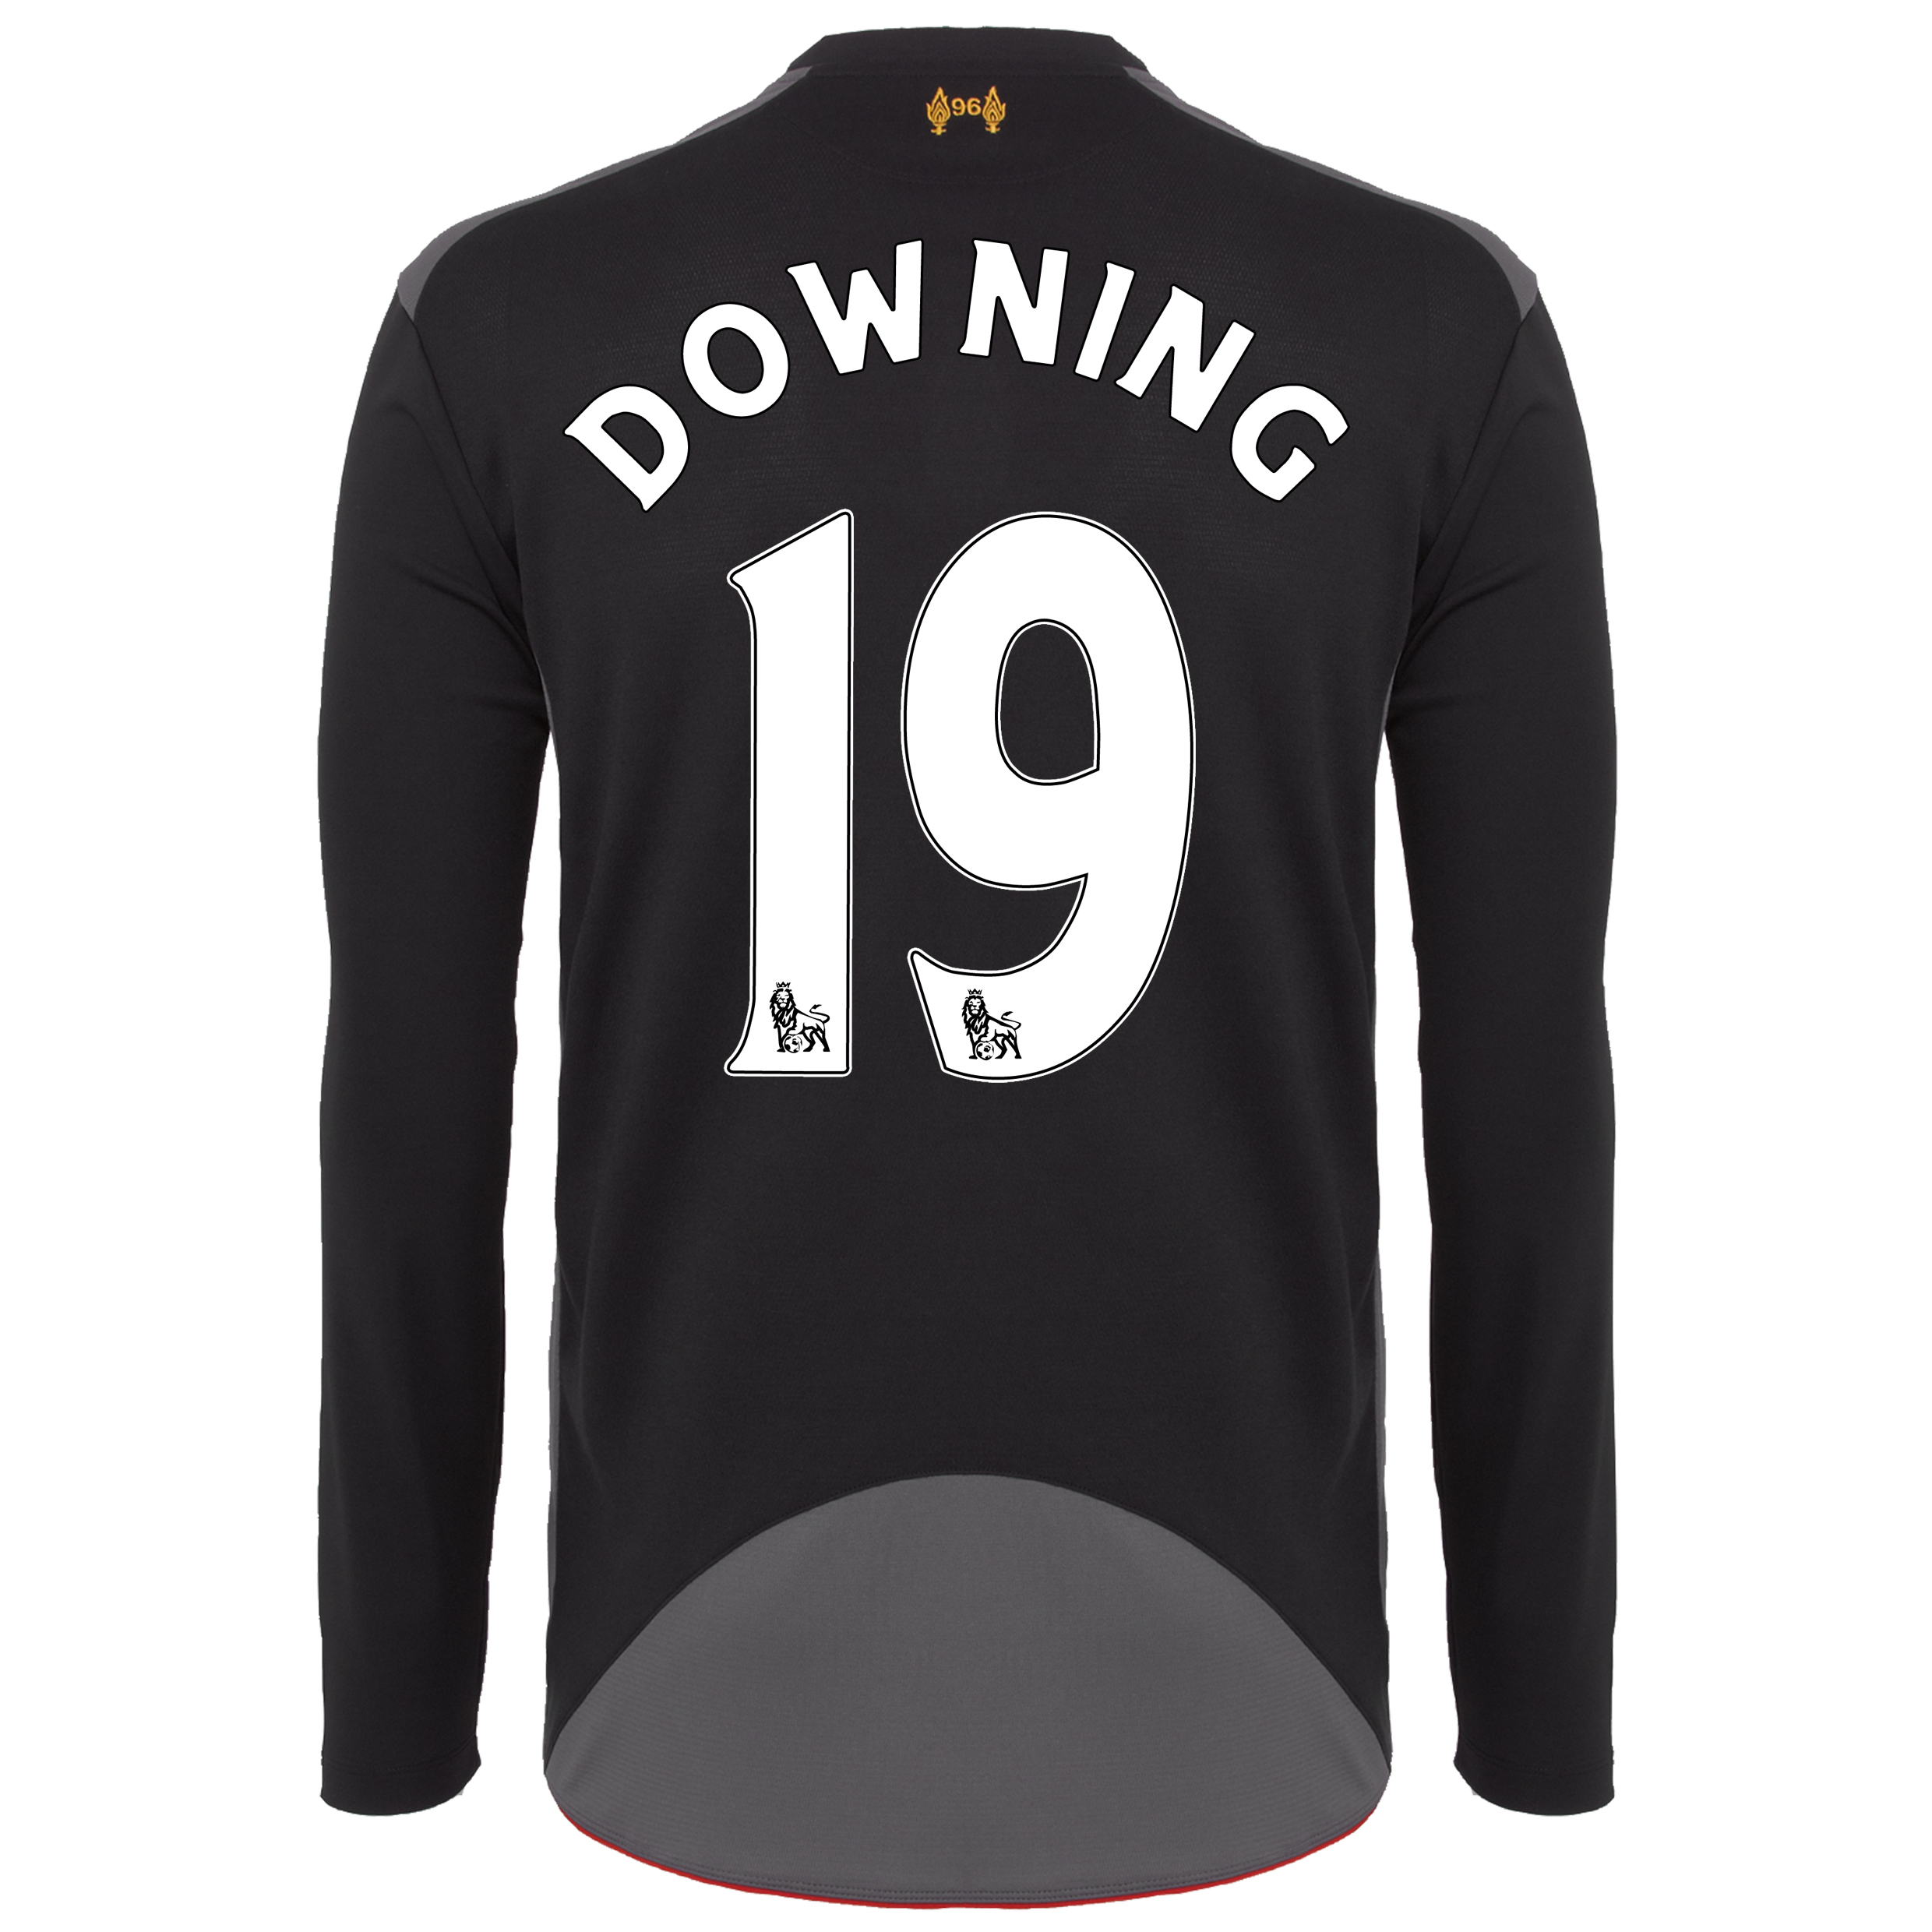 Liverpool Away Shirt 2012/13 - Long Sleeve - Kids with Downing 19 printing